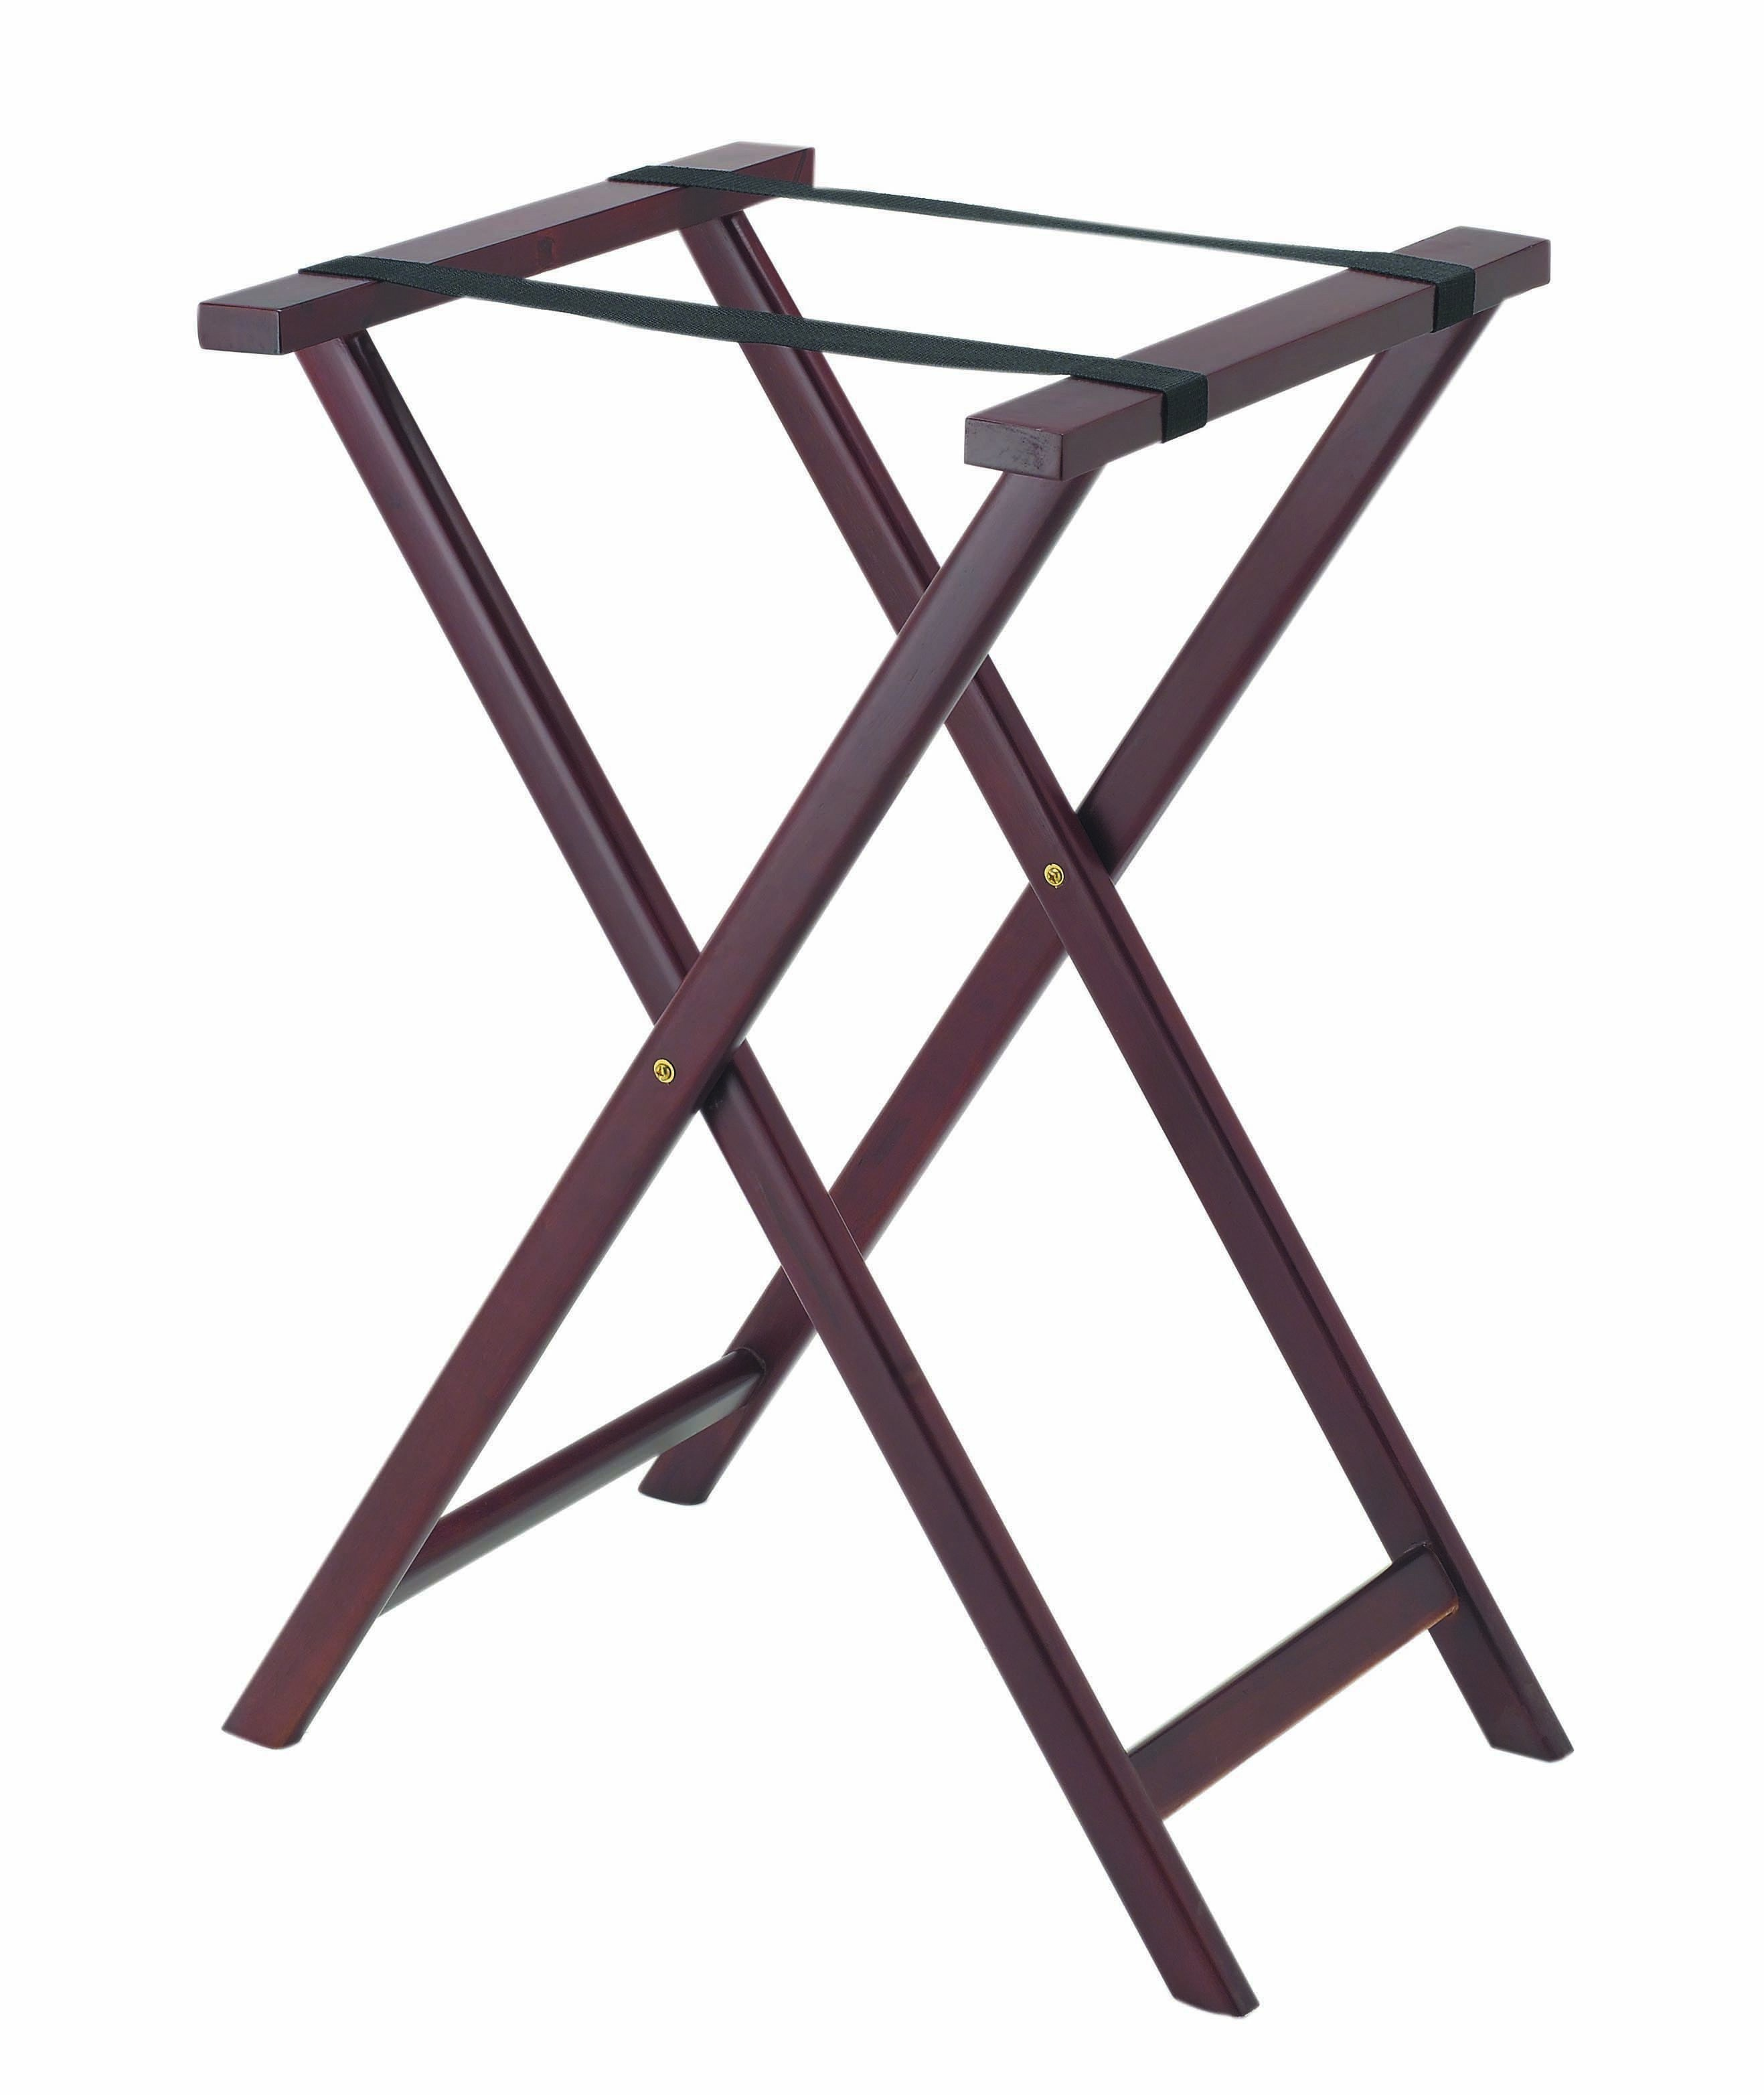 Aarco Products TS-3 Dark Wood Tray Stand